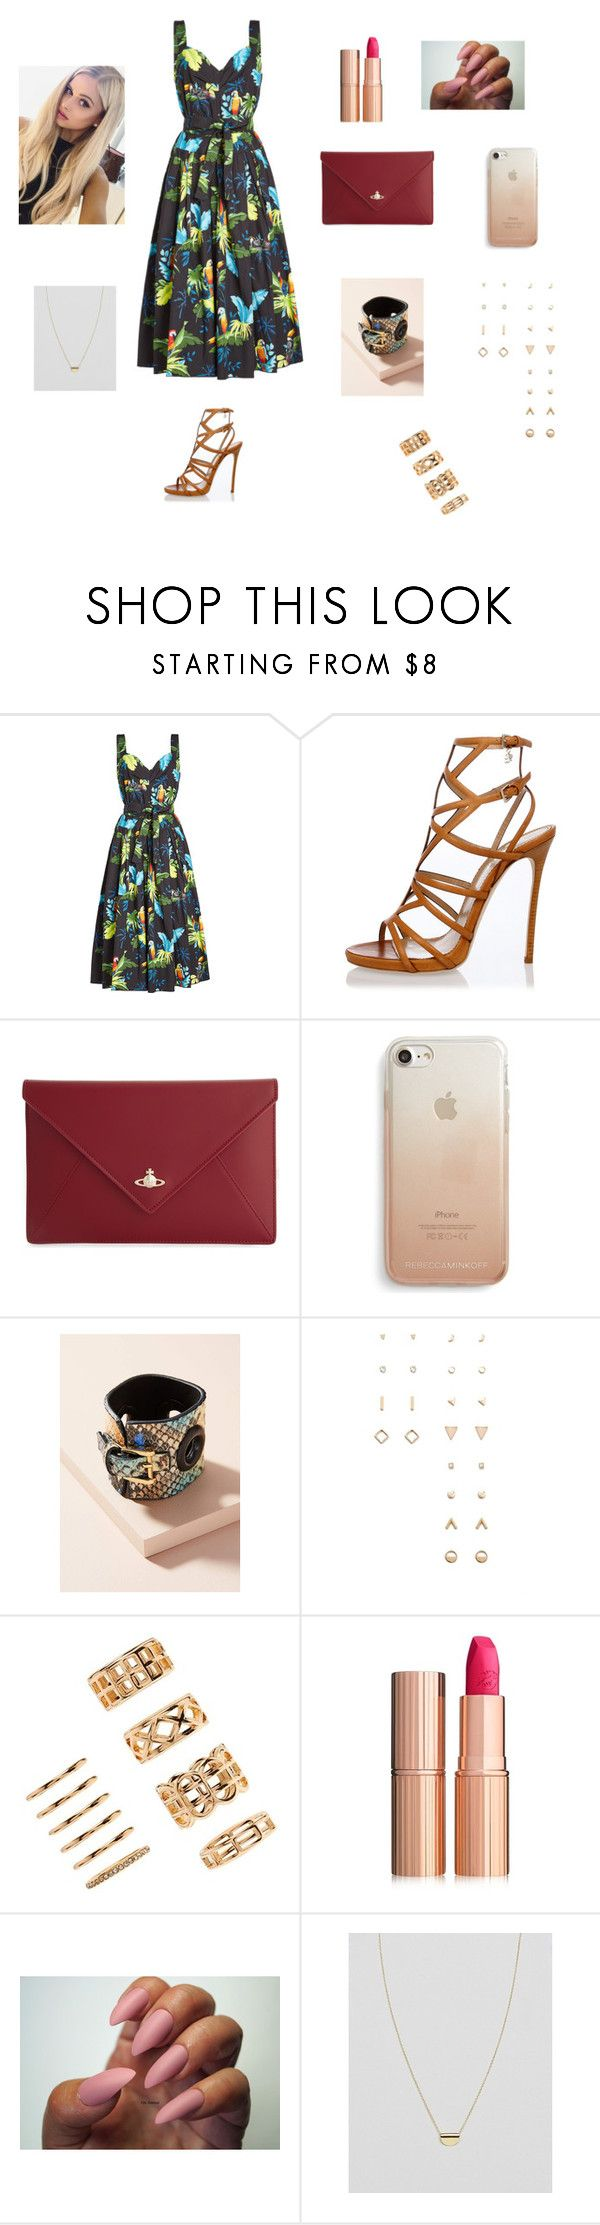 """""""🌝🌝"""" by aiea ❤ liked on Polyvore featuring Marc Jacobs, Dsquared2, Vivienne Westwood, Rebecca Minkoff, Nora Lozza, Forever 21, Charlotte Tilbury and ASOS"""